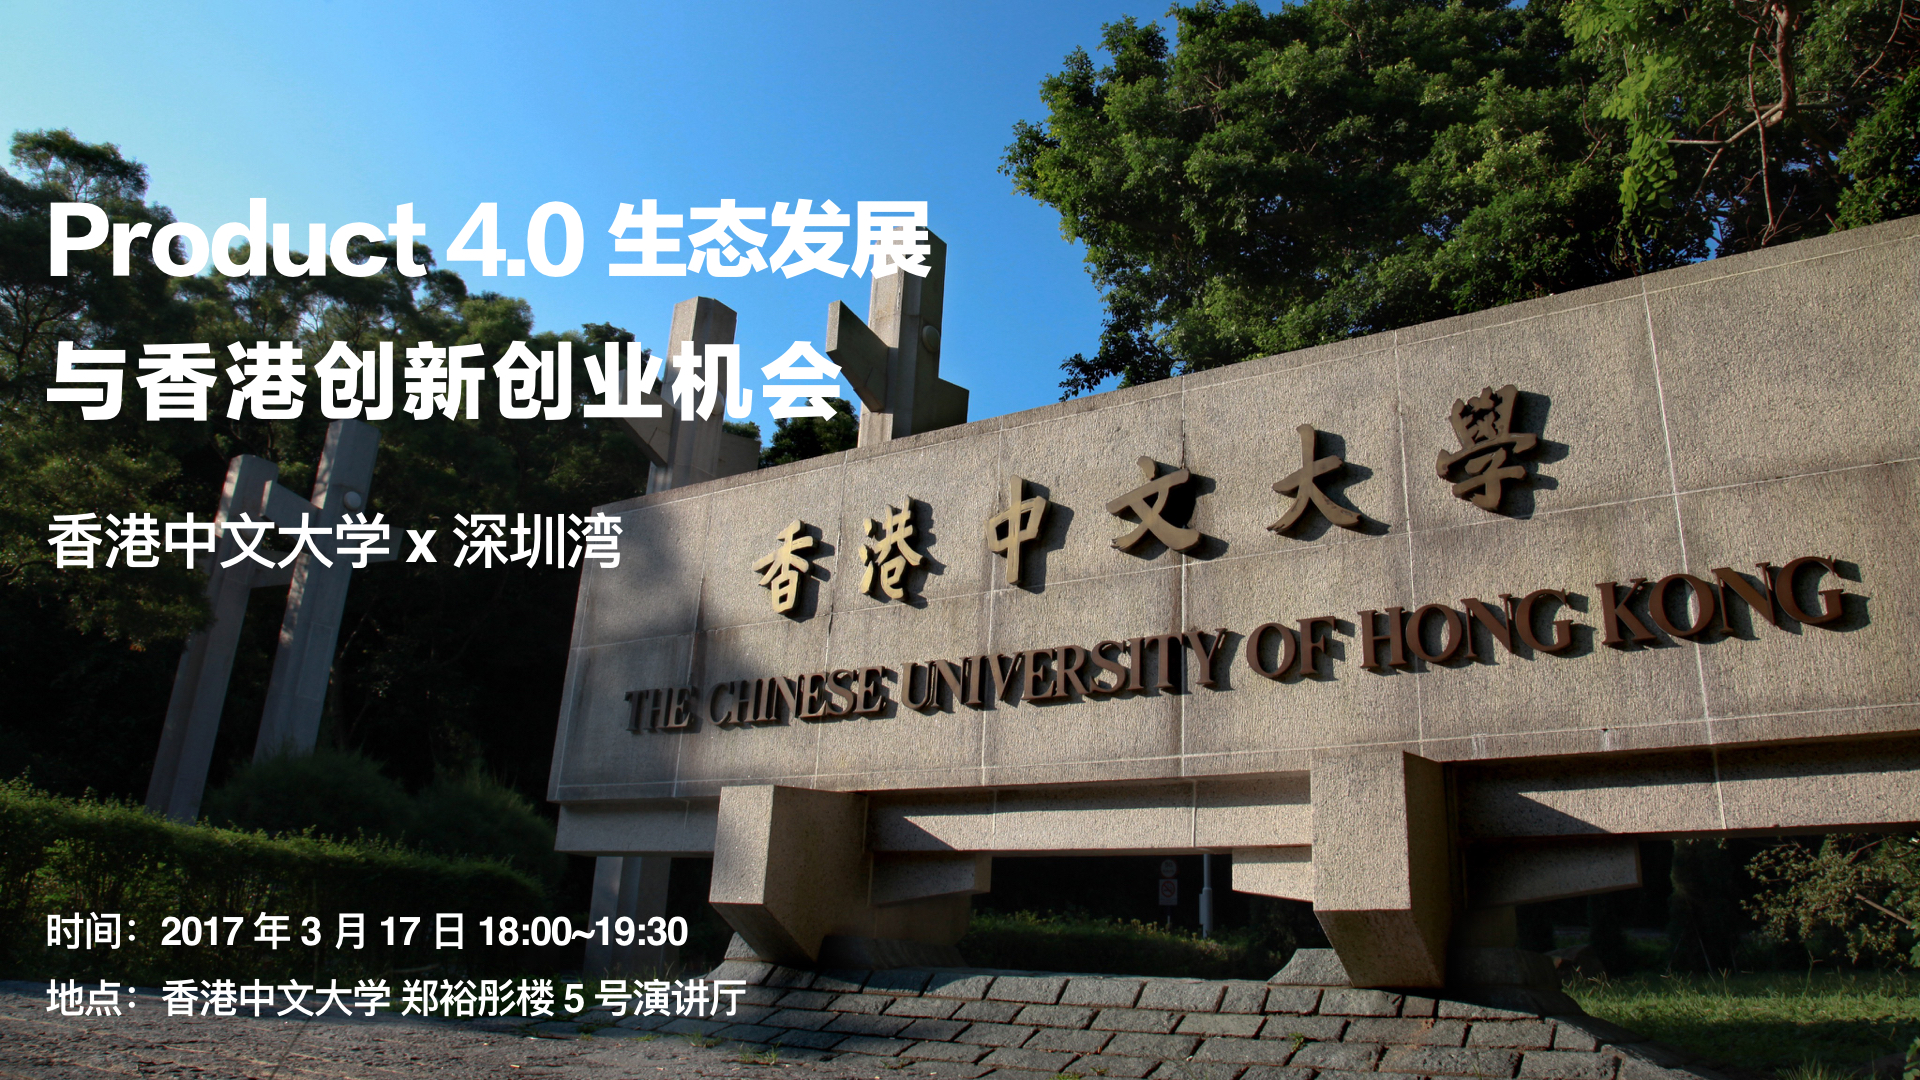 Uploads%2fpicture%2ffile%2f11285%2f20170317 the chinese university of hong kong terry1.001